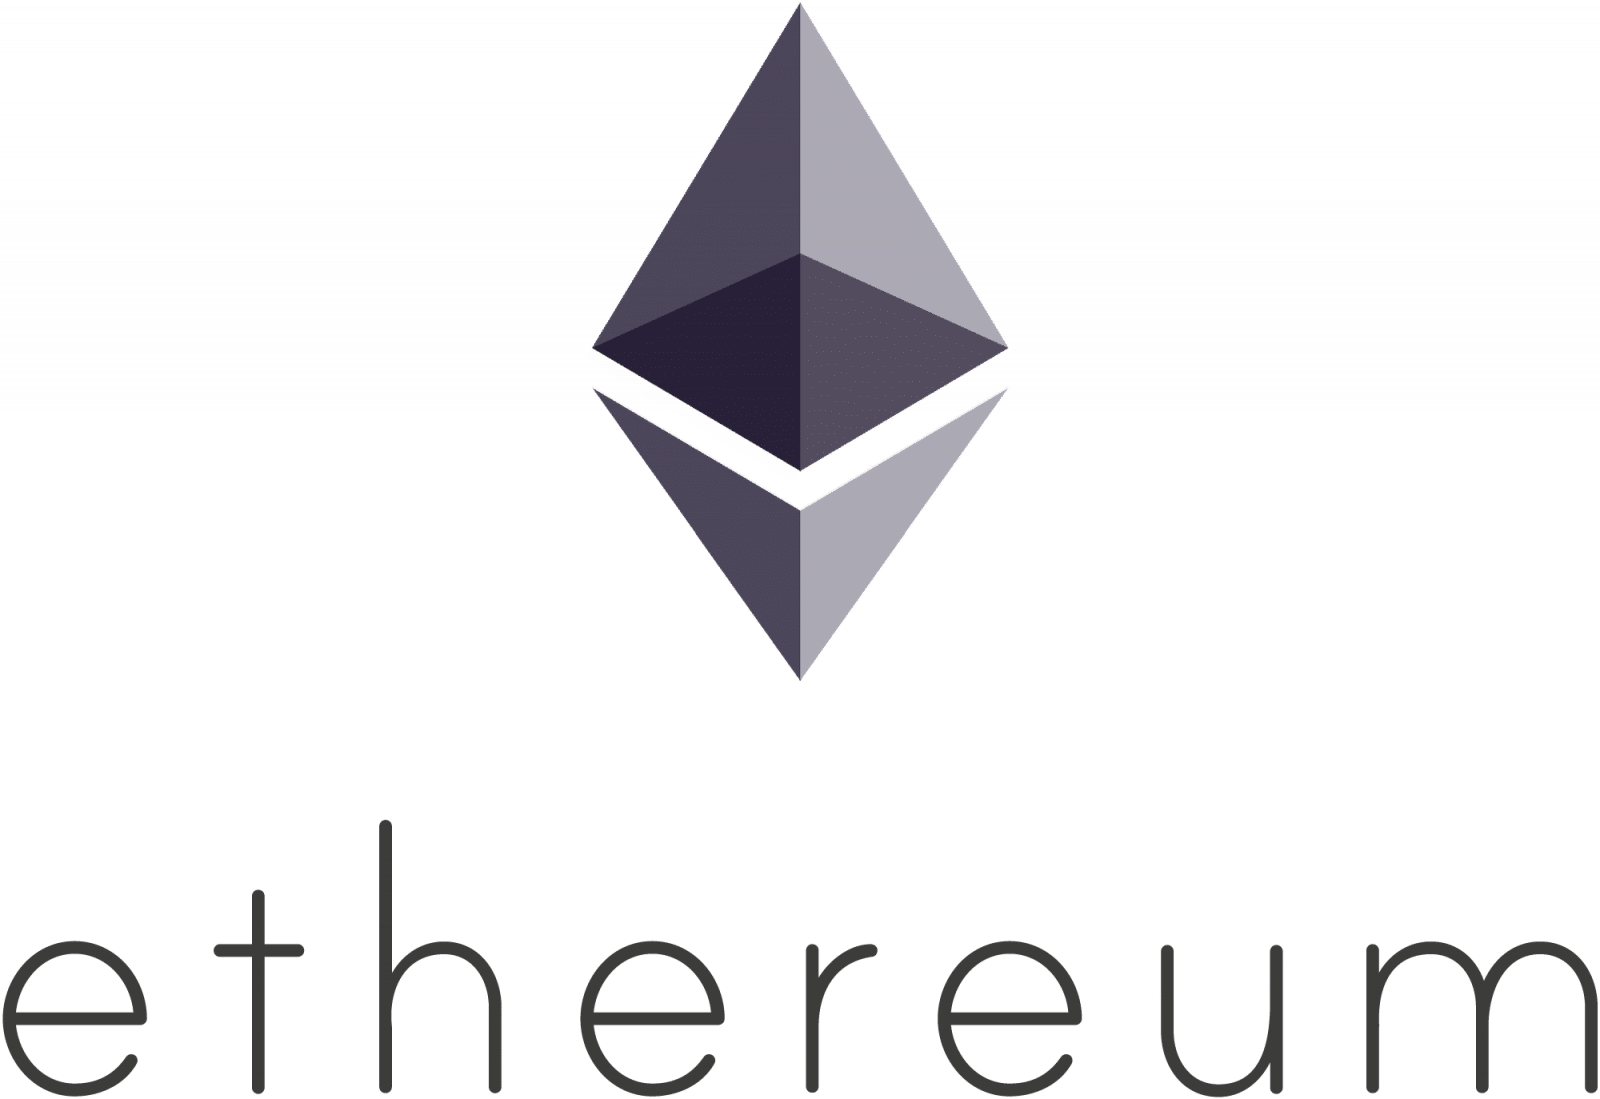 Ethereum Development or Hyperledger Training? Hyperledger vs Ethereum